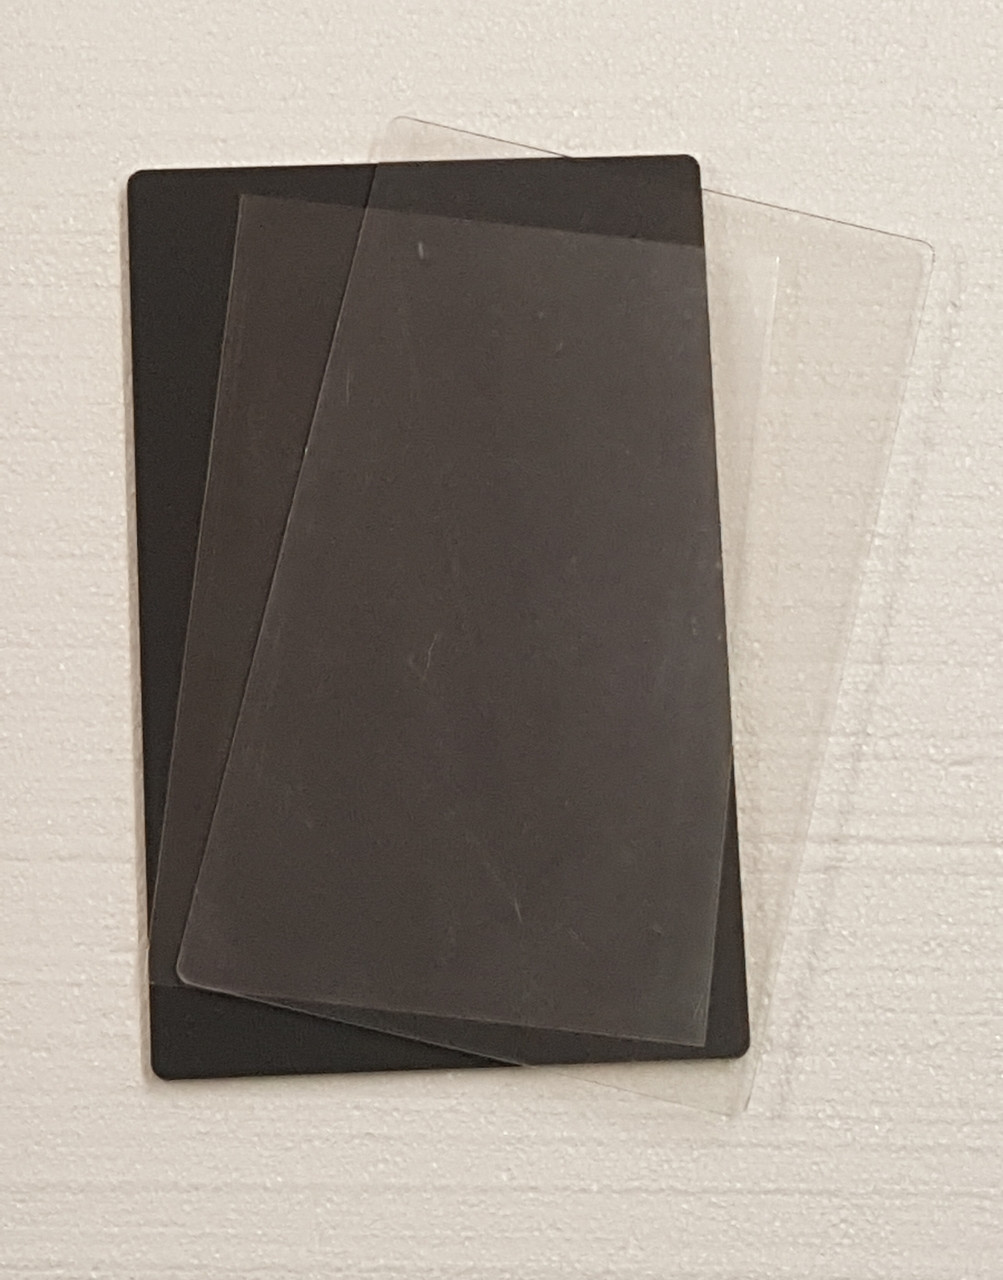 Acrylic front black backer board and Mylar sleeve all included